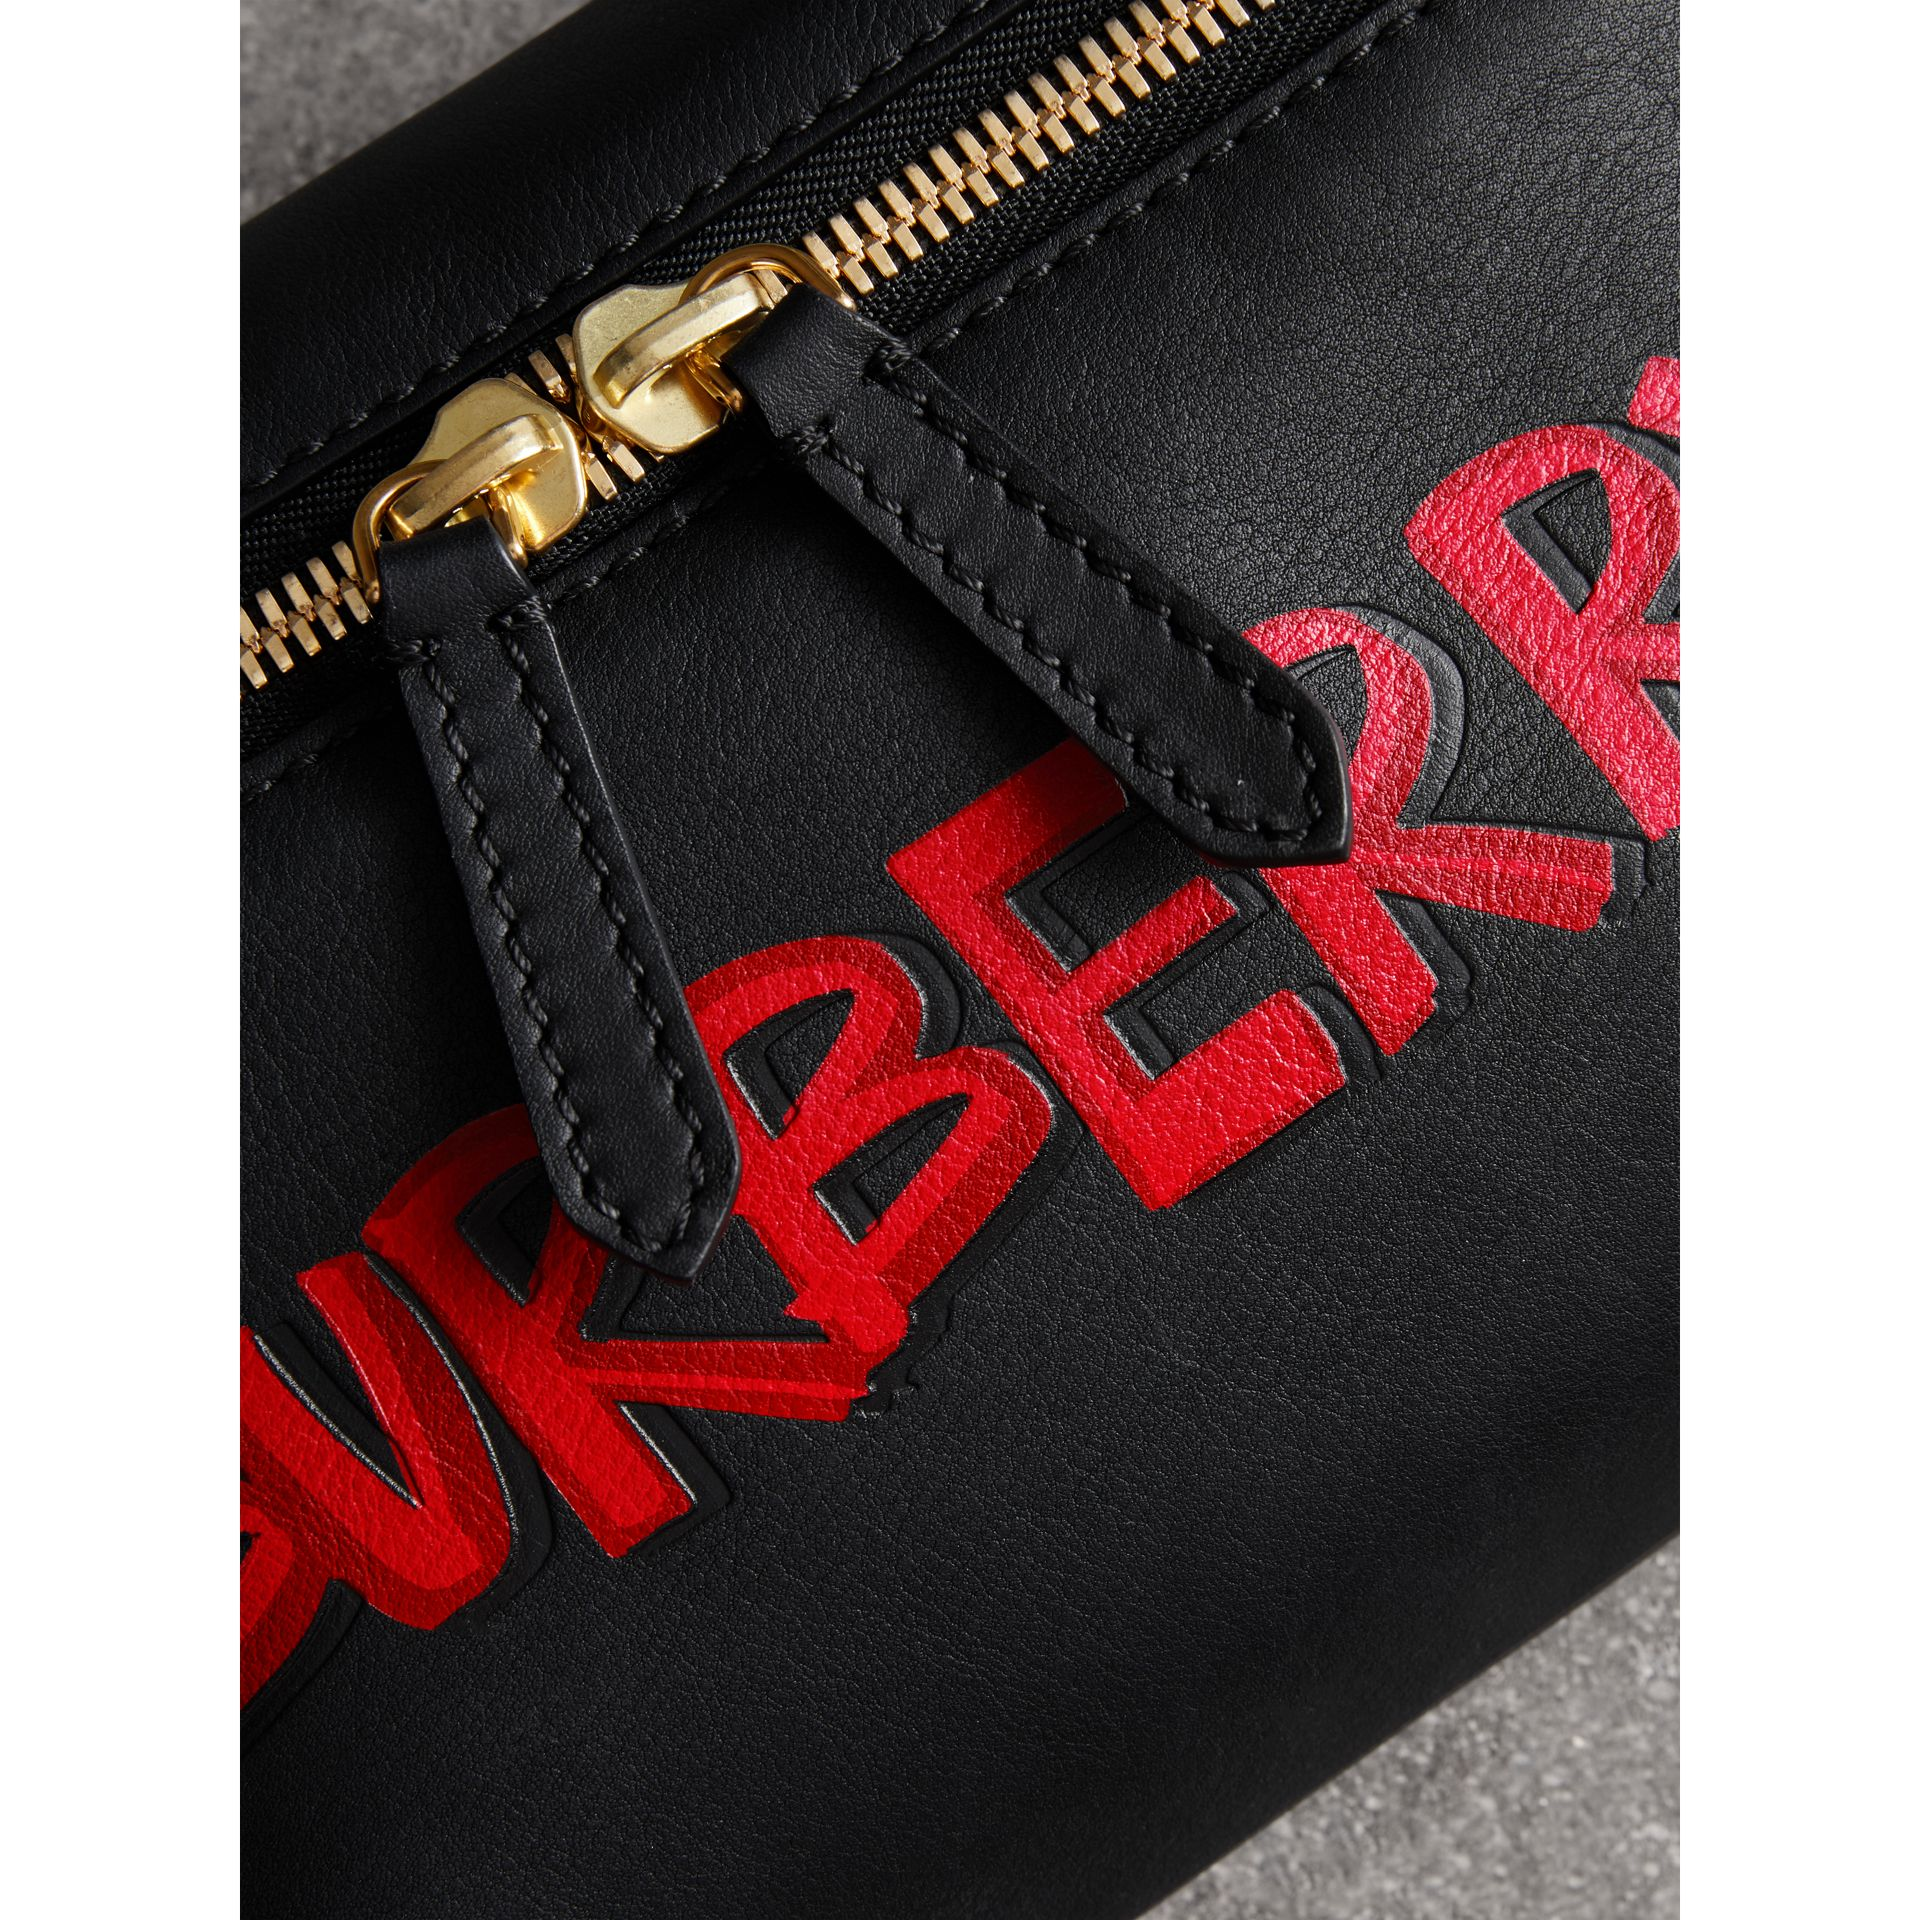 Medium Graffiti Print Leather Bum Bag in Black - Men | Burberry - gallery image 1